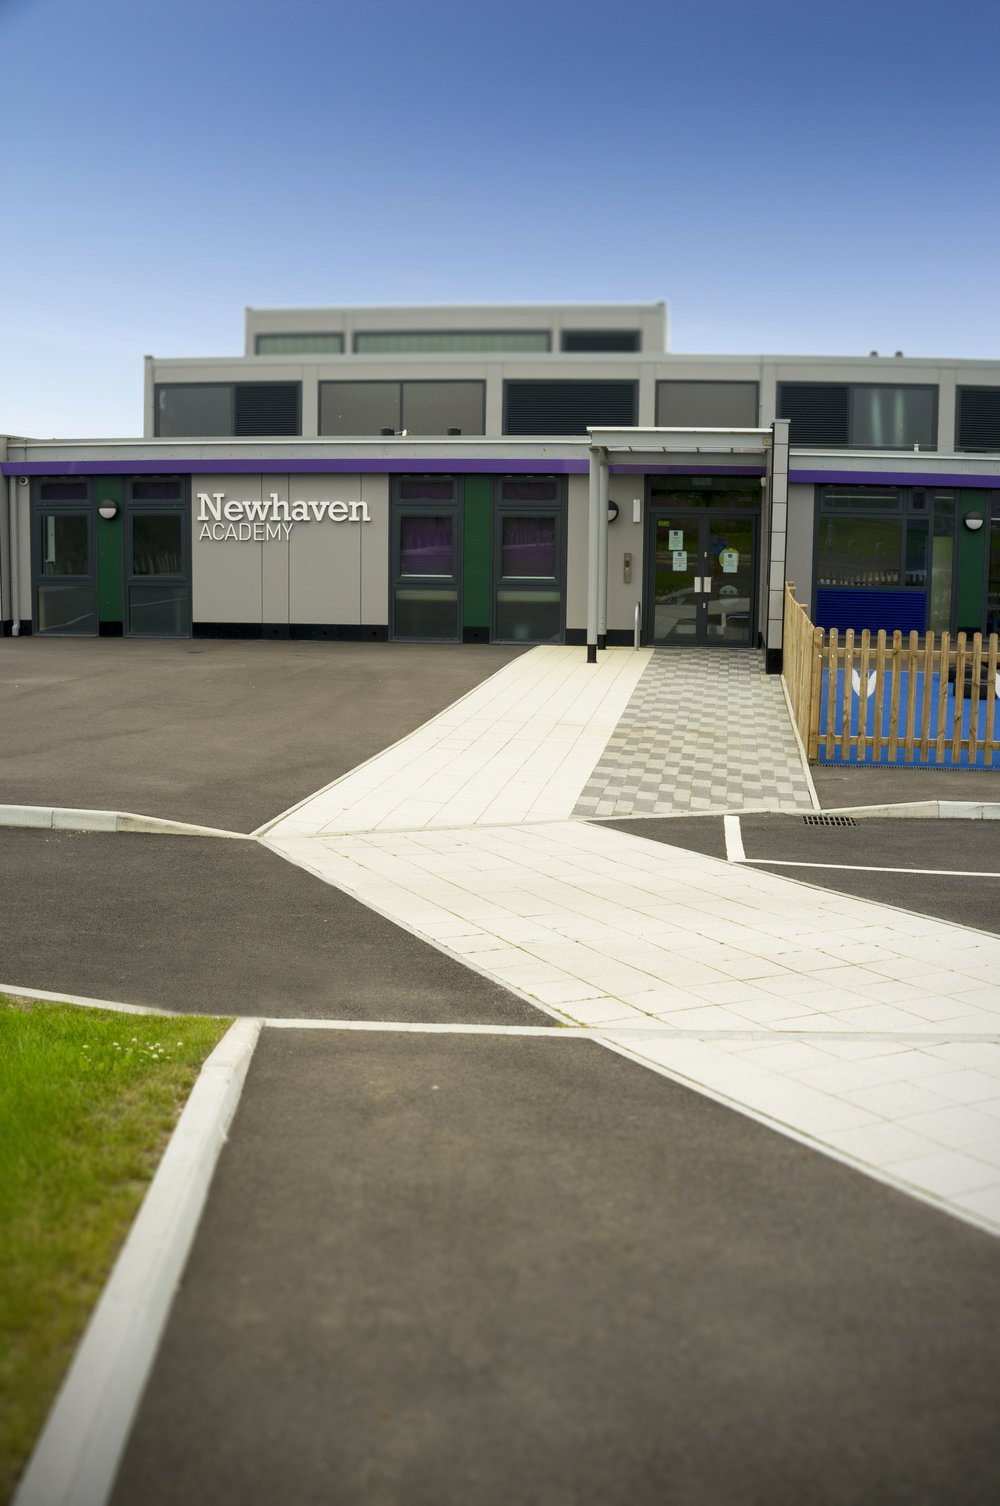 Newhaven academy, Newhaven, East Sussex